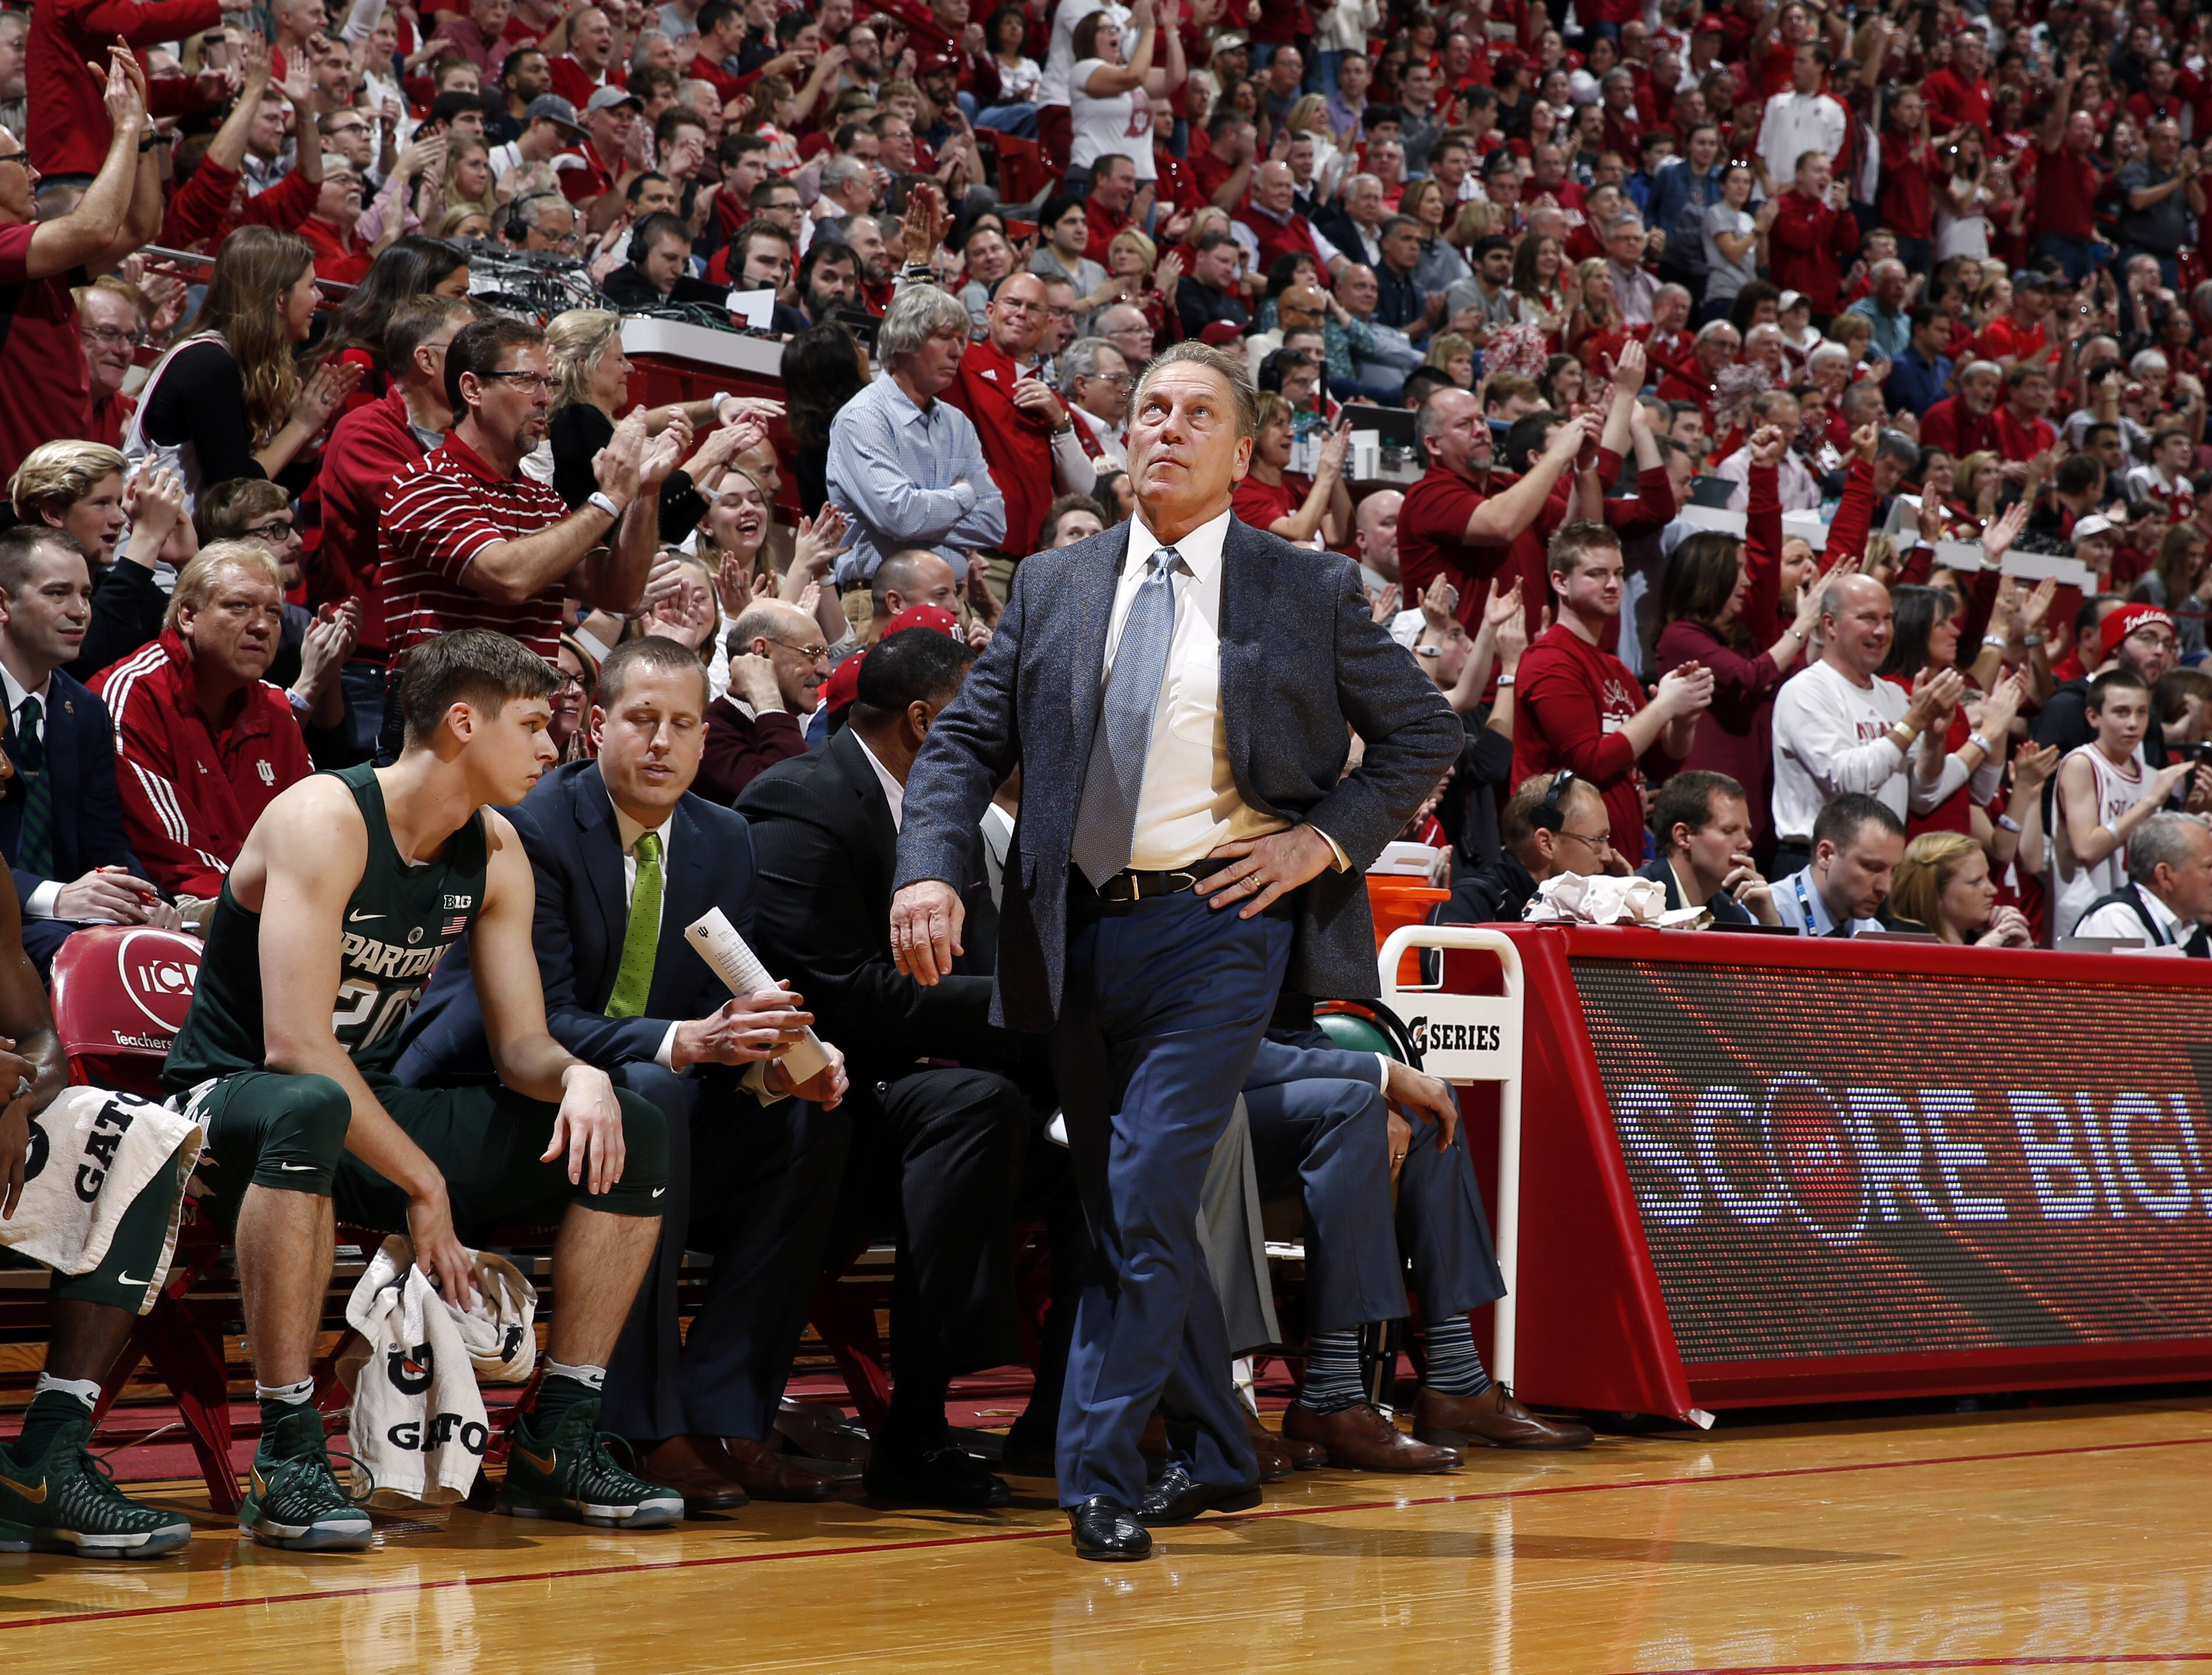 Purdue vs Michigan State live stream: How to watch online